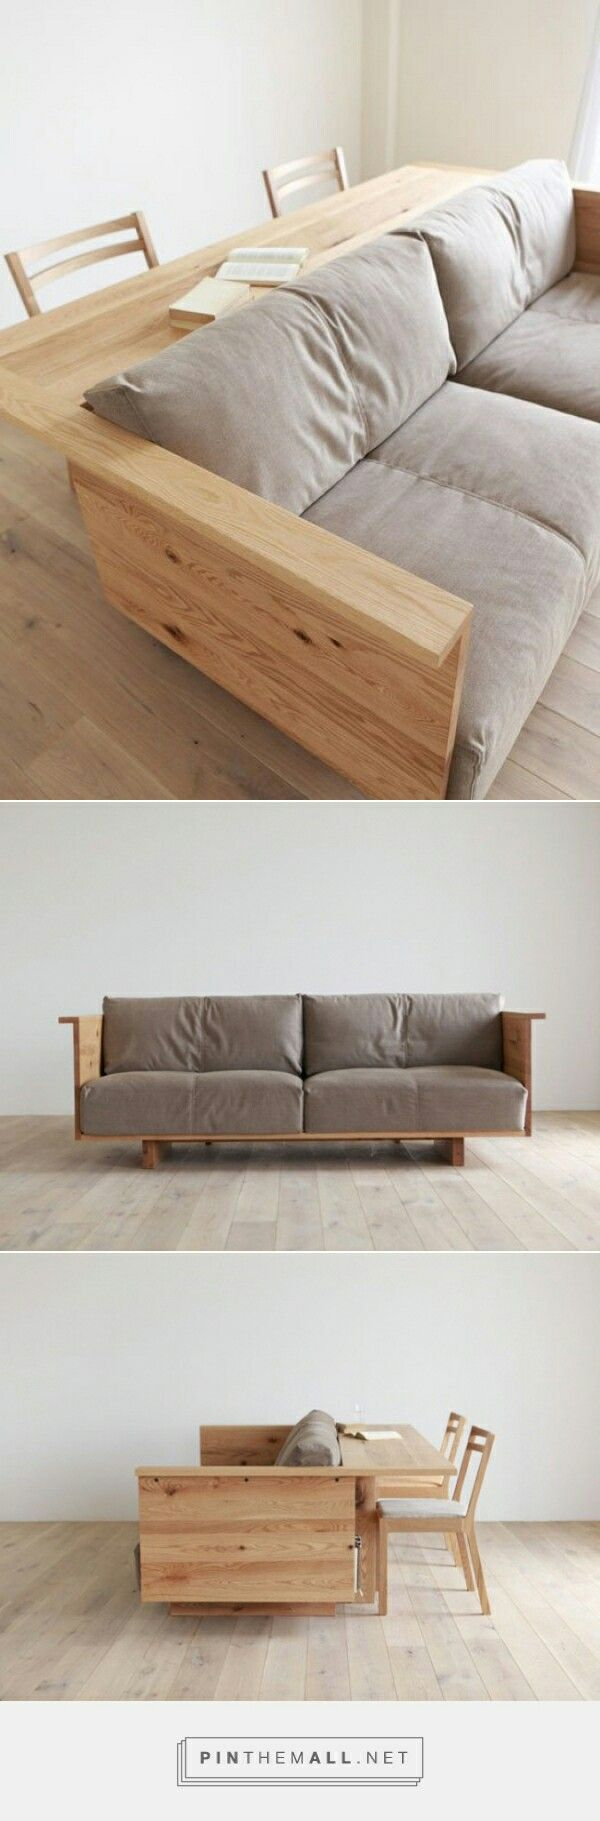 clever sofa, storage, small space, home, interior, space saving, table, dining